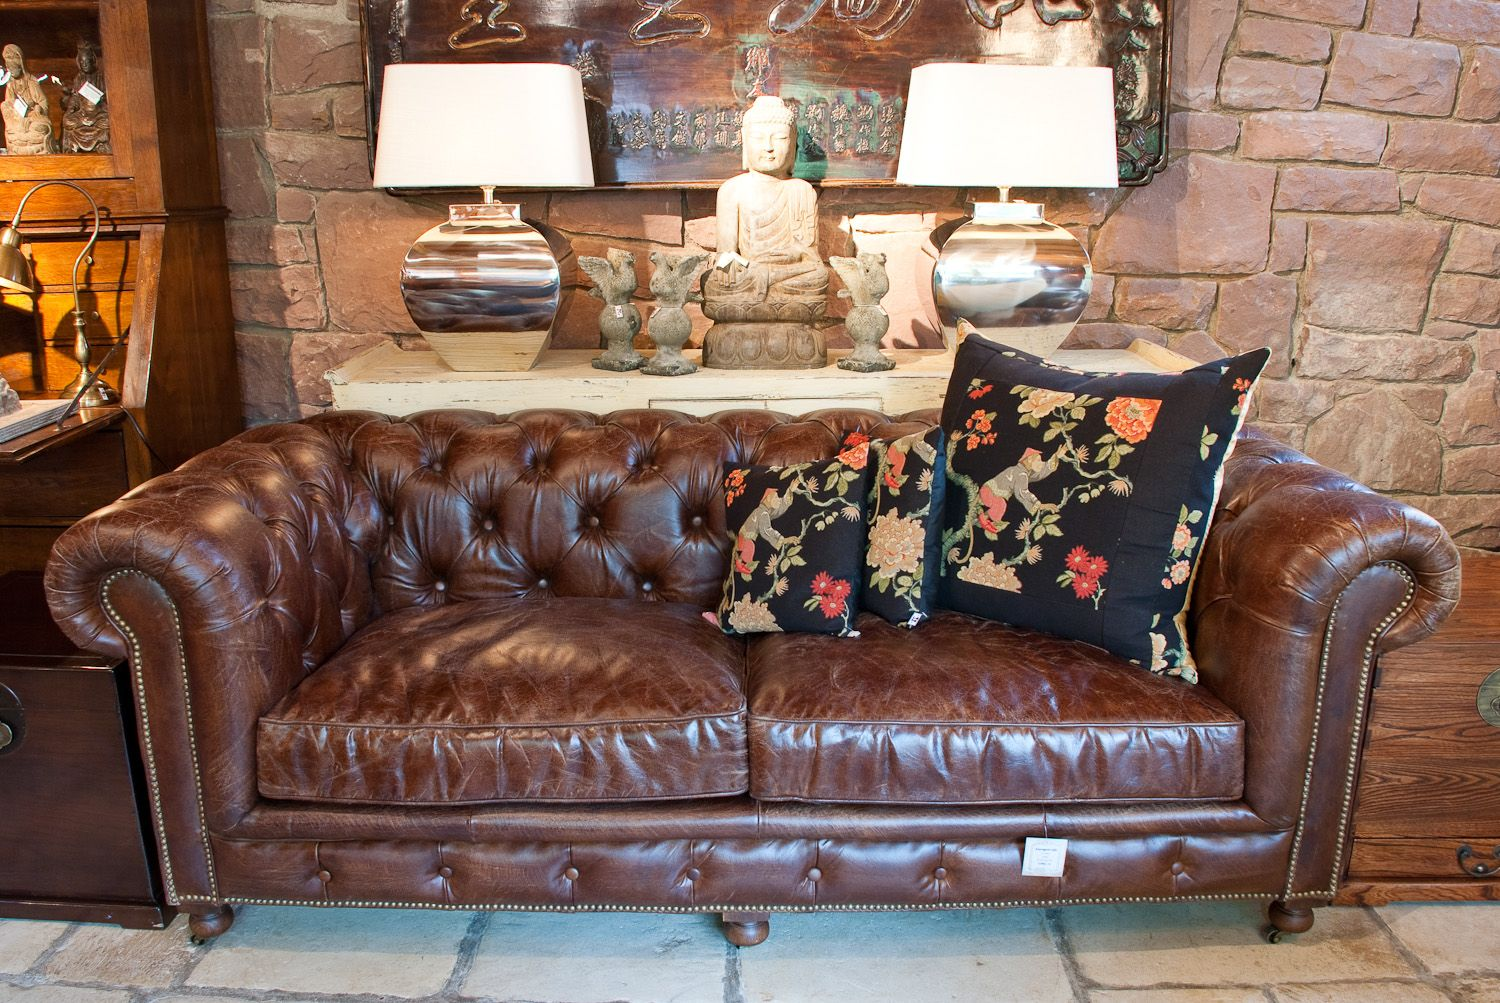 Dark Brown Leather Sofa With Floral Cushion Decorative Buddha Statue And Unique Table Lamp Brown Leather Sofa Dark Brown Leather Sofa Floral Cushions